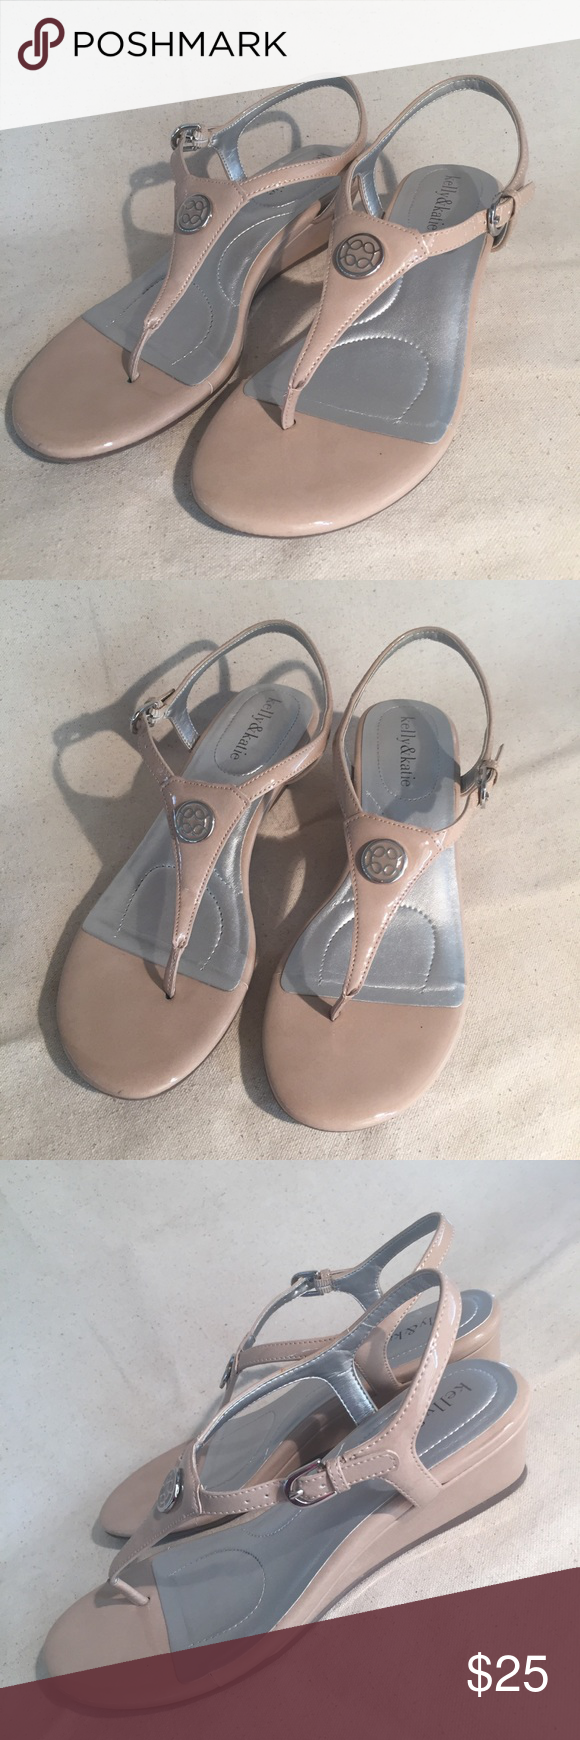 "Kelly and Katie low wedge sandals Sporty and fun low wedge thong sandals. Patent leather taupe. Worn once - see pic of heels for one spot  of a scuff. Wedge 1.5"". Size 8. In great shape. Non smoking pet free closet. Week day shipping only. Kelly & Katie Shoes Sandals #lowwedgesandals Kelly and Katie low wedge sandals Sporty and fun low wedge thong sandals. Patent leather taupe. Worn once - see pic of heels for one spot  of a scuff. Wedge 1.5"". Size 8. In great shape. Non smoking pet free clo #lowwedgesandals"